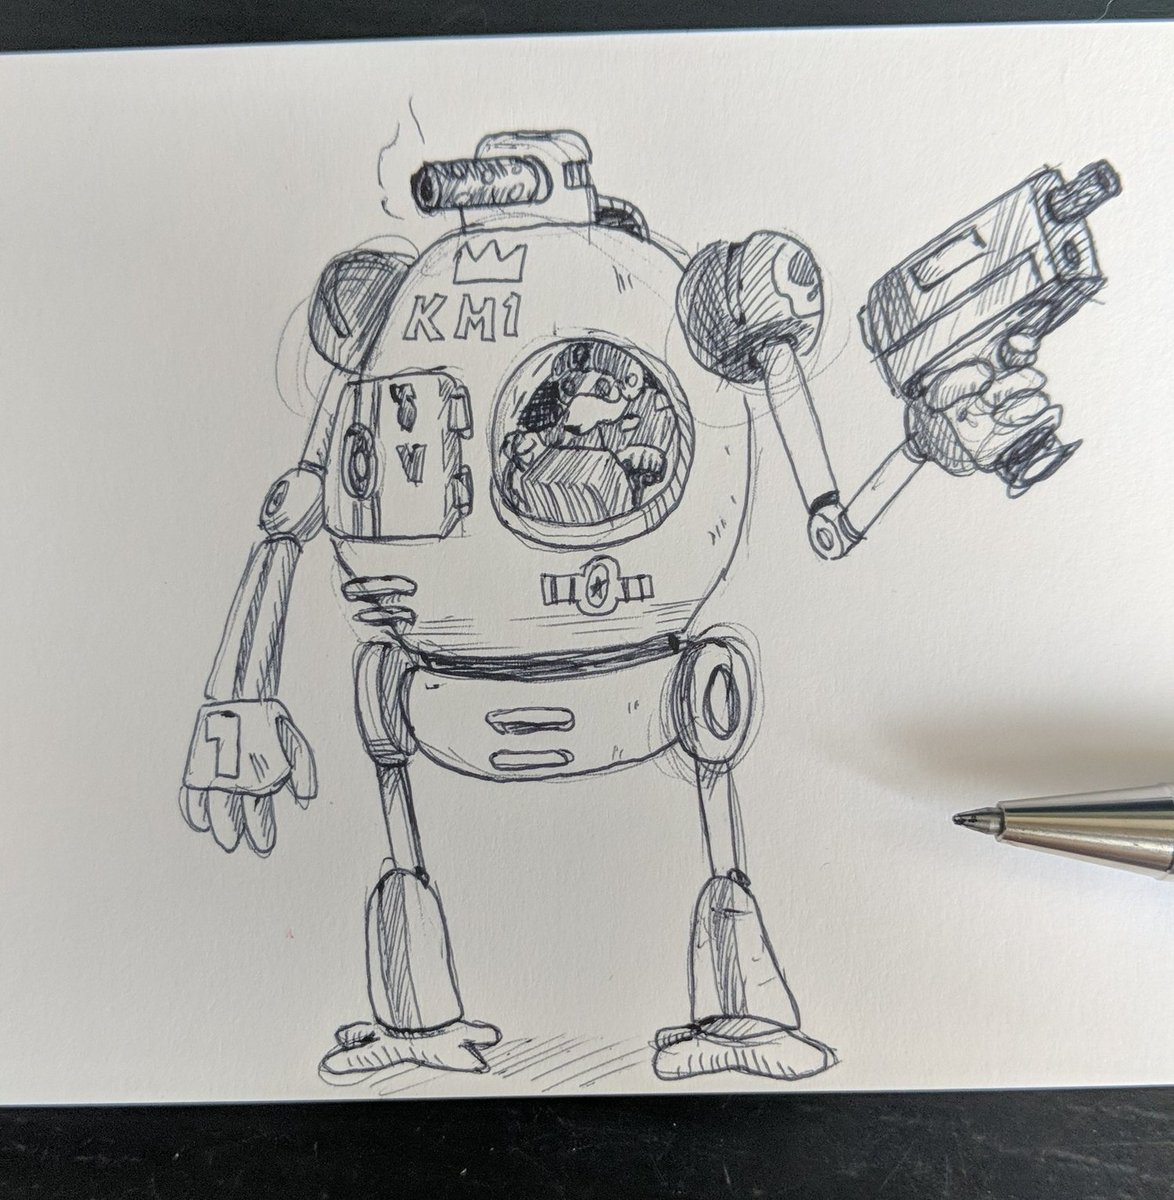 I bet you thought I forgot...  But I didn't, so here's more #doggo #Mecha action for the #dailydrawing   Kingdom of Morocco urban assault model with a lefty asymmetrical cockpit. pic.twitter.com/rTEUtF8r6a